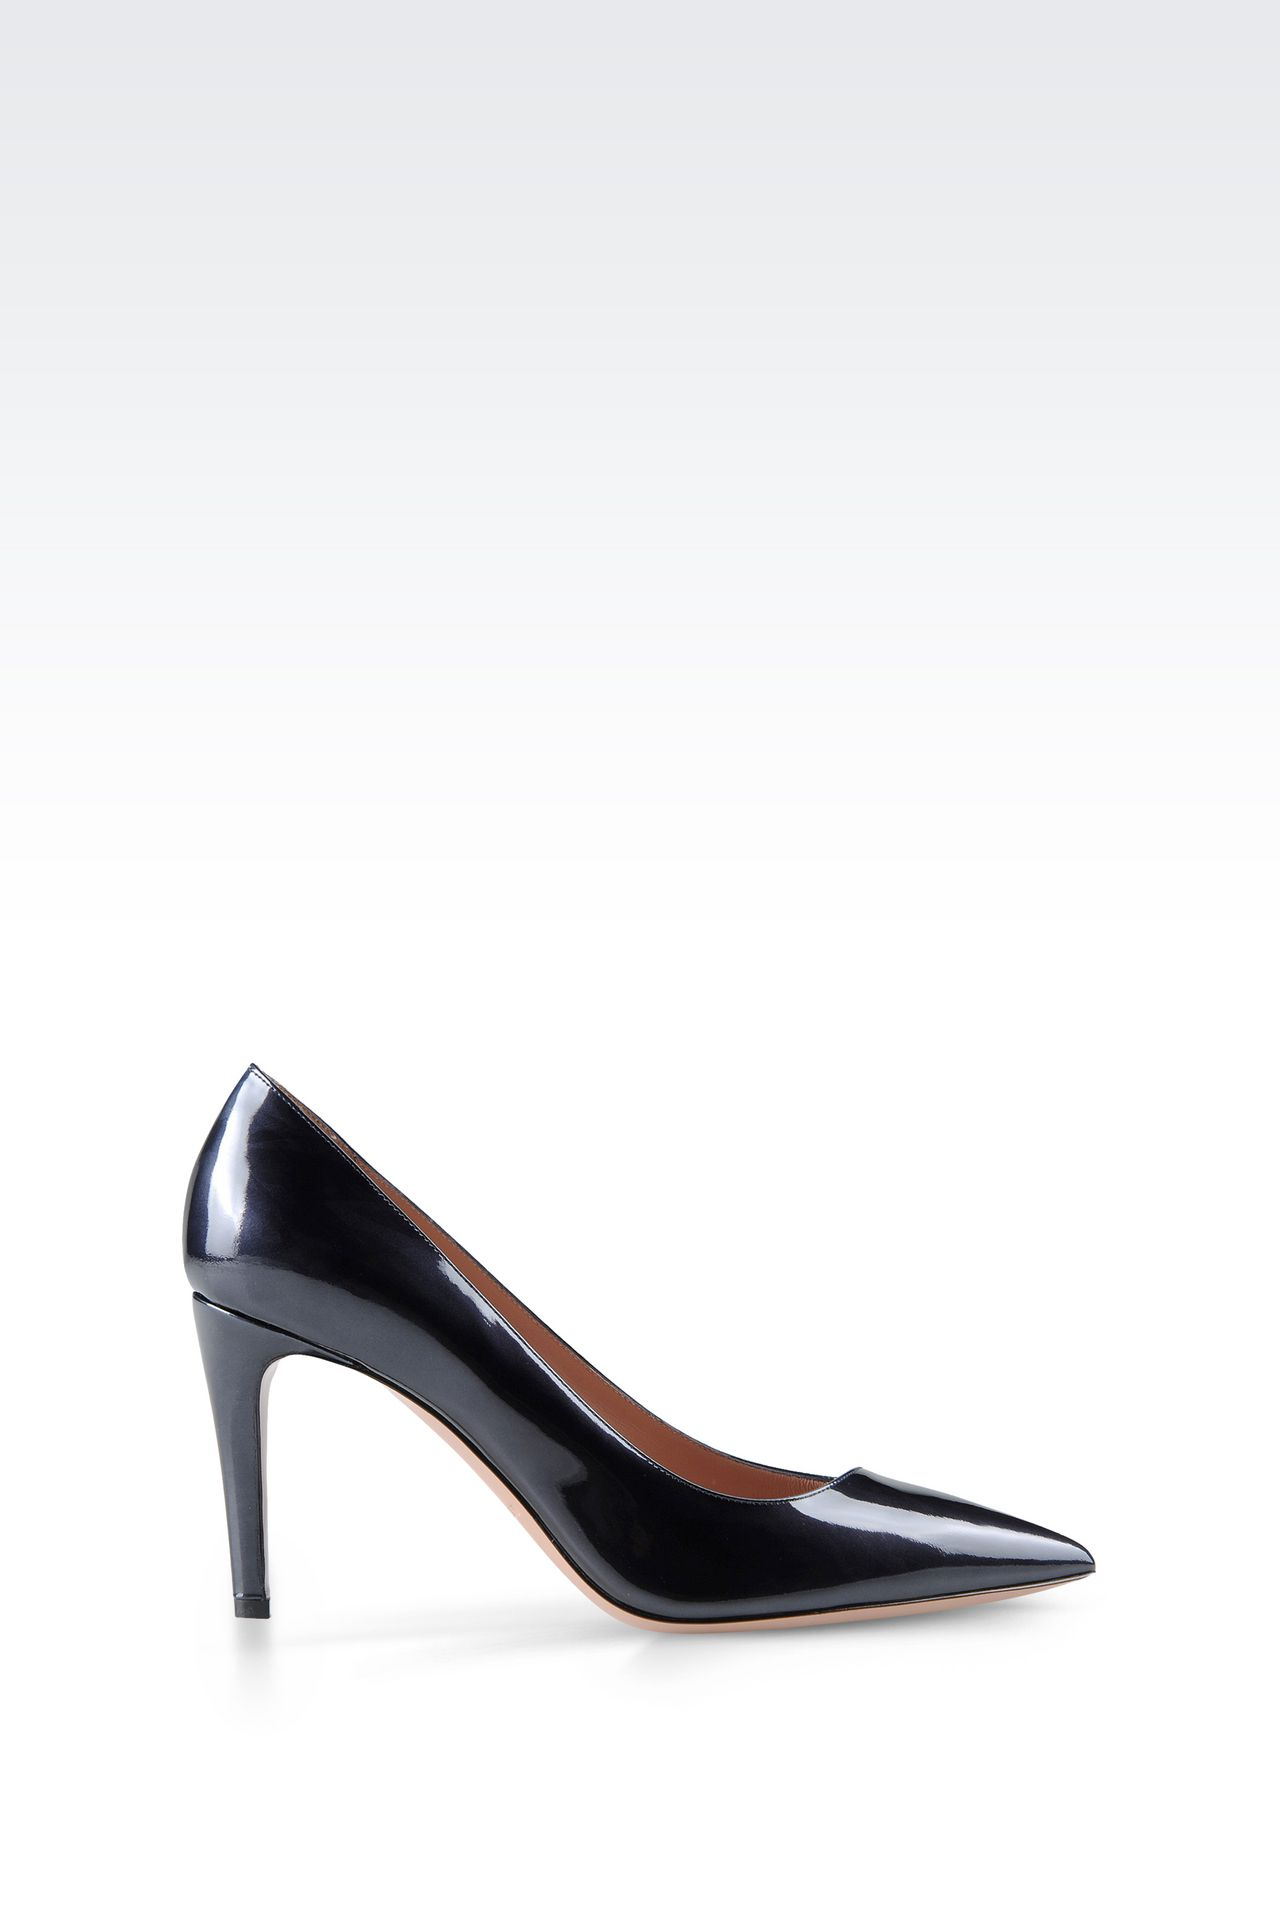 COURT IN SHINE EFFECT LEATHER: Pumps Women by Armani - 0